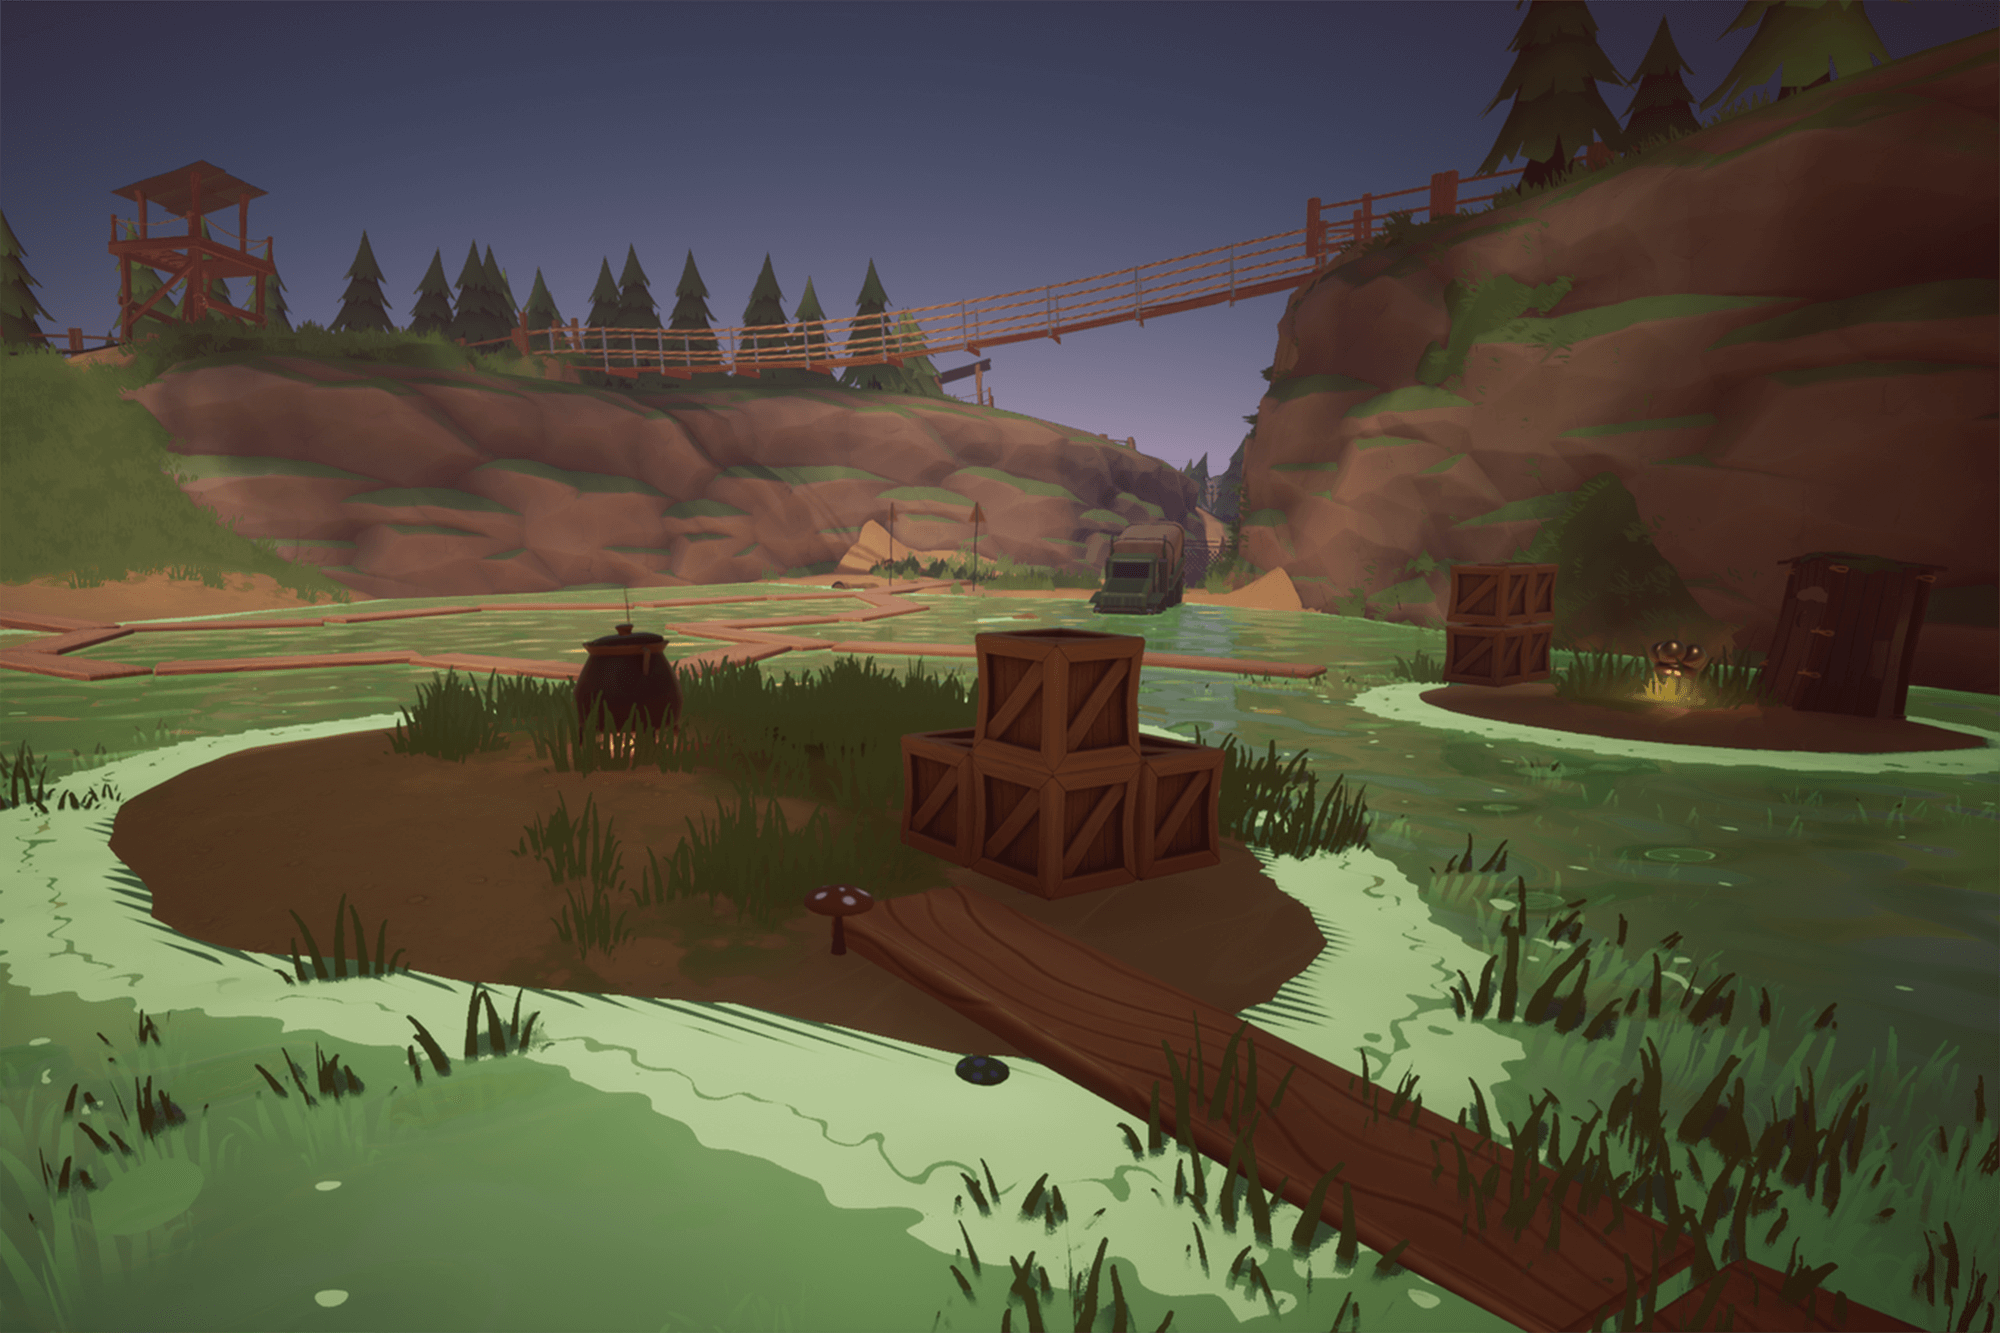 A swamp in a computer game